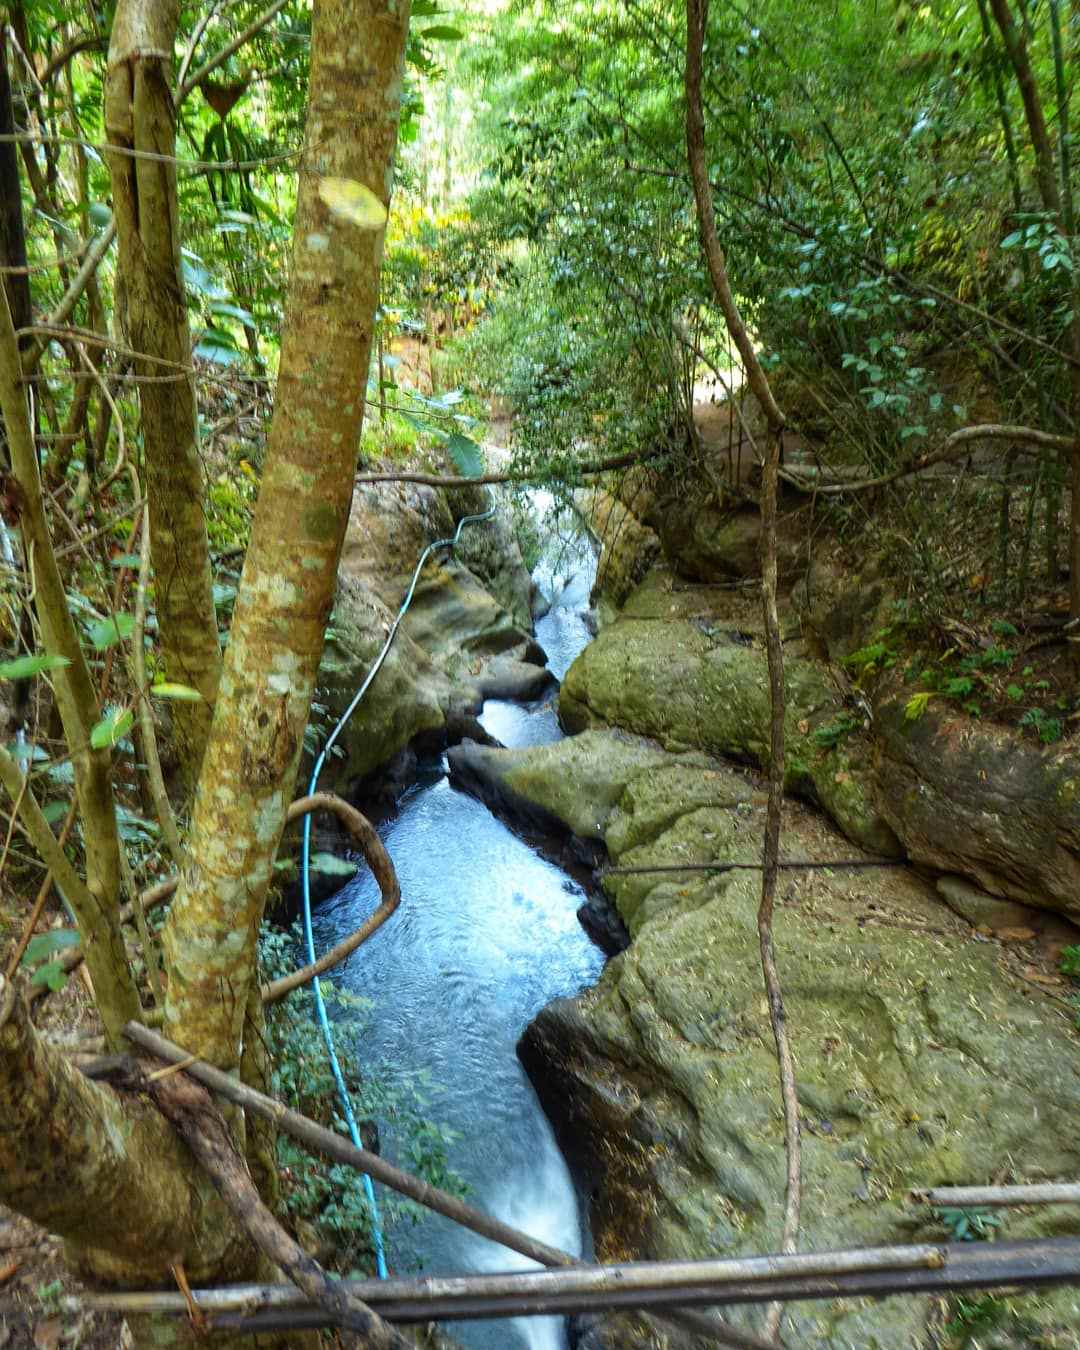 A water stream from the Pam Bok Waterfall in Pai